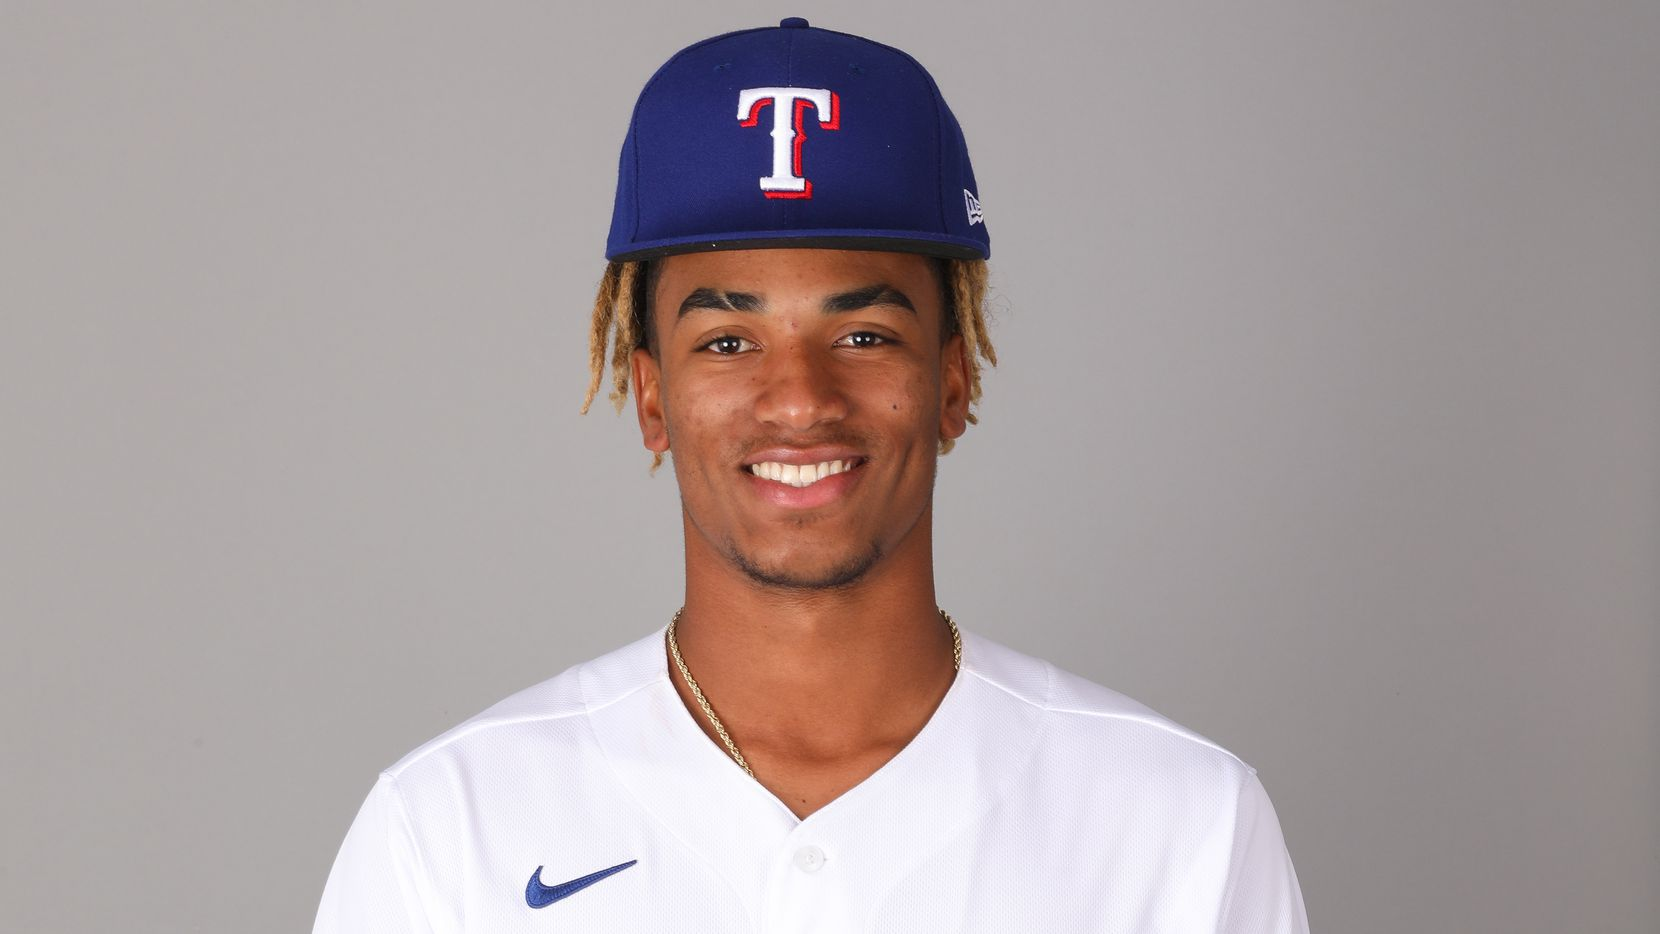 3/9/2020 — Ronny Henriquez of the Texas Rangers poses for a photo on March 9, 2020.